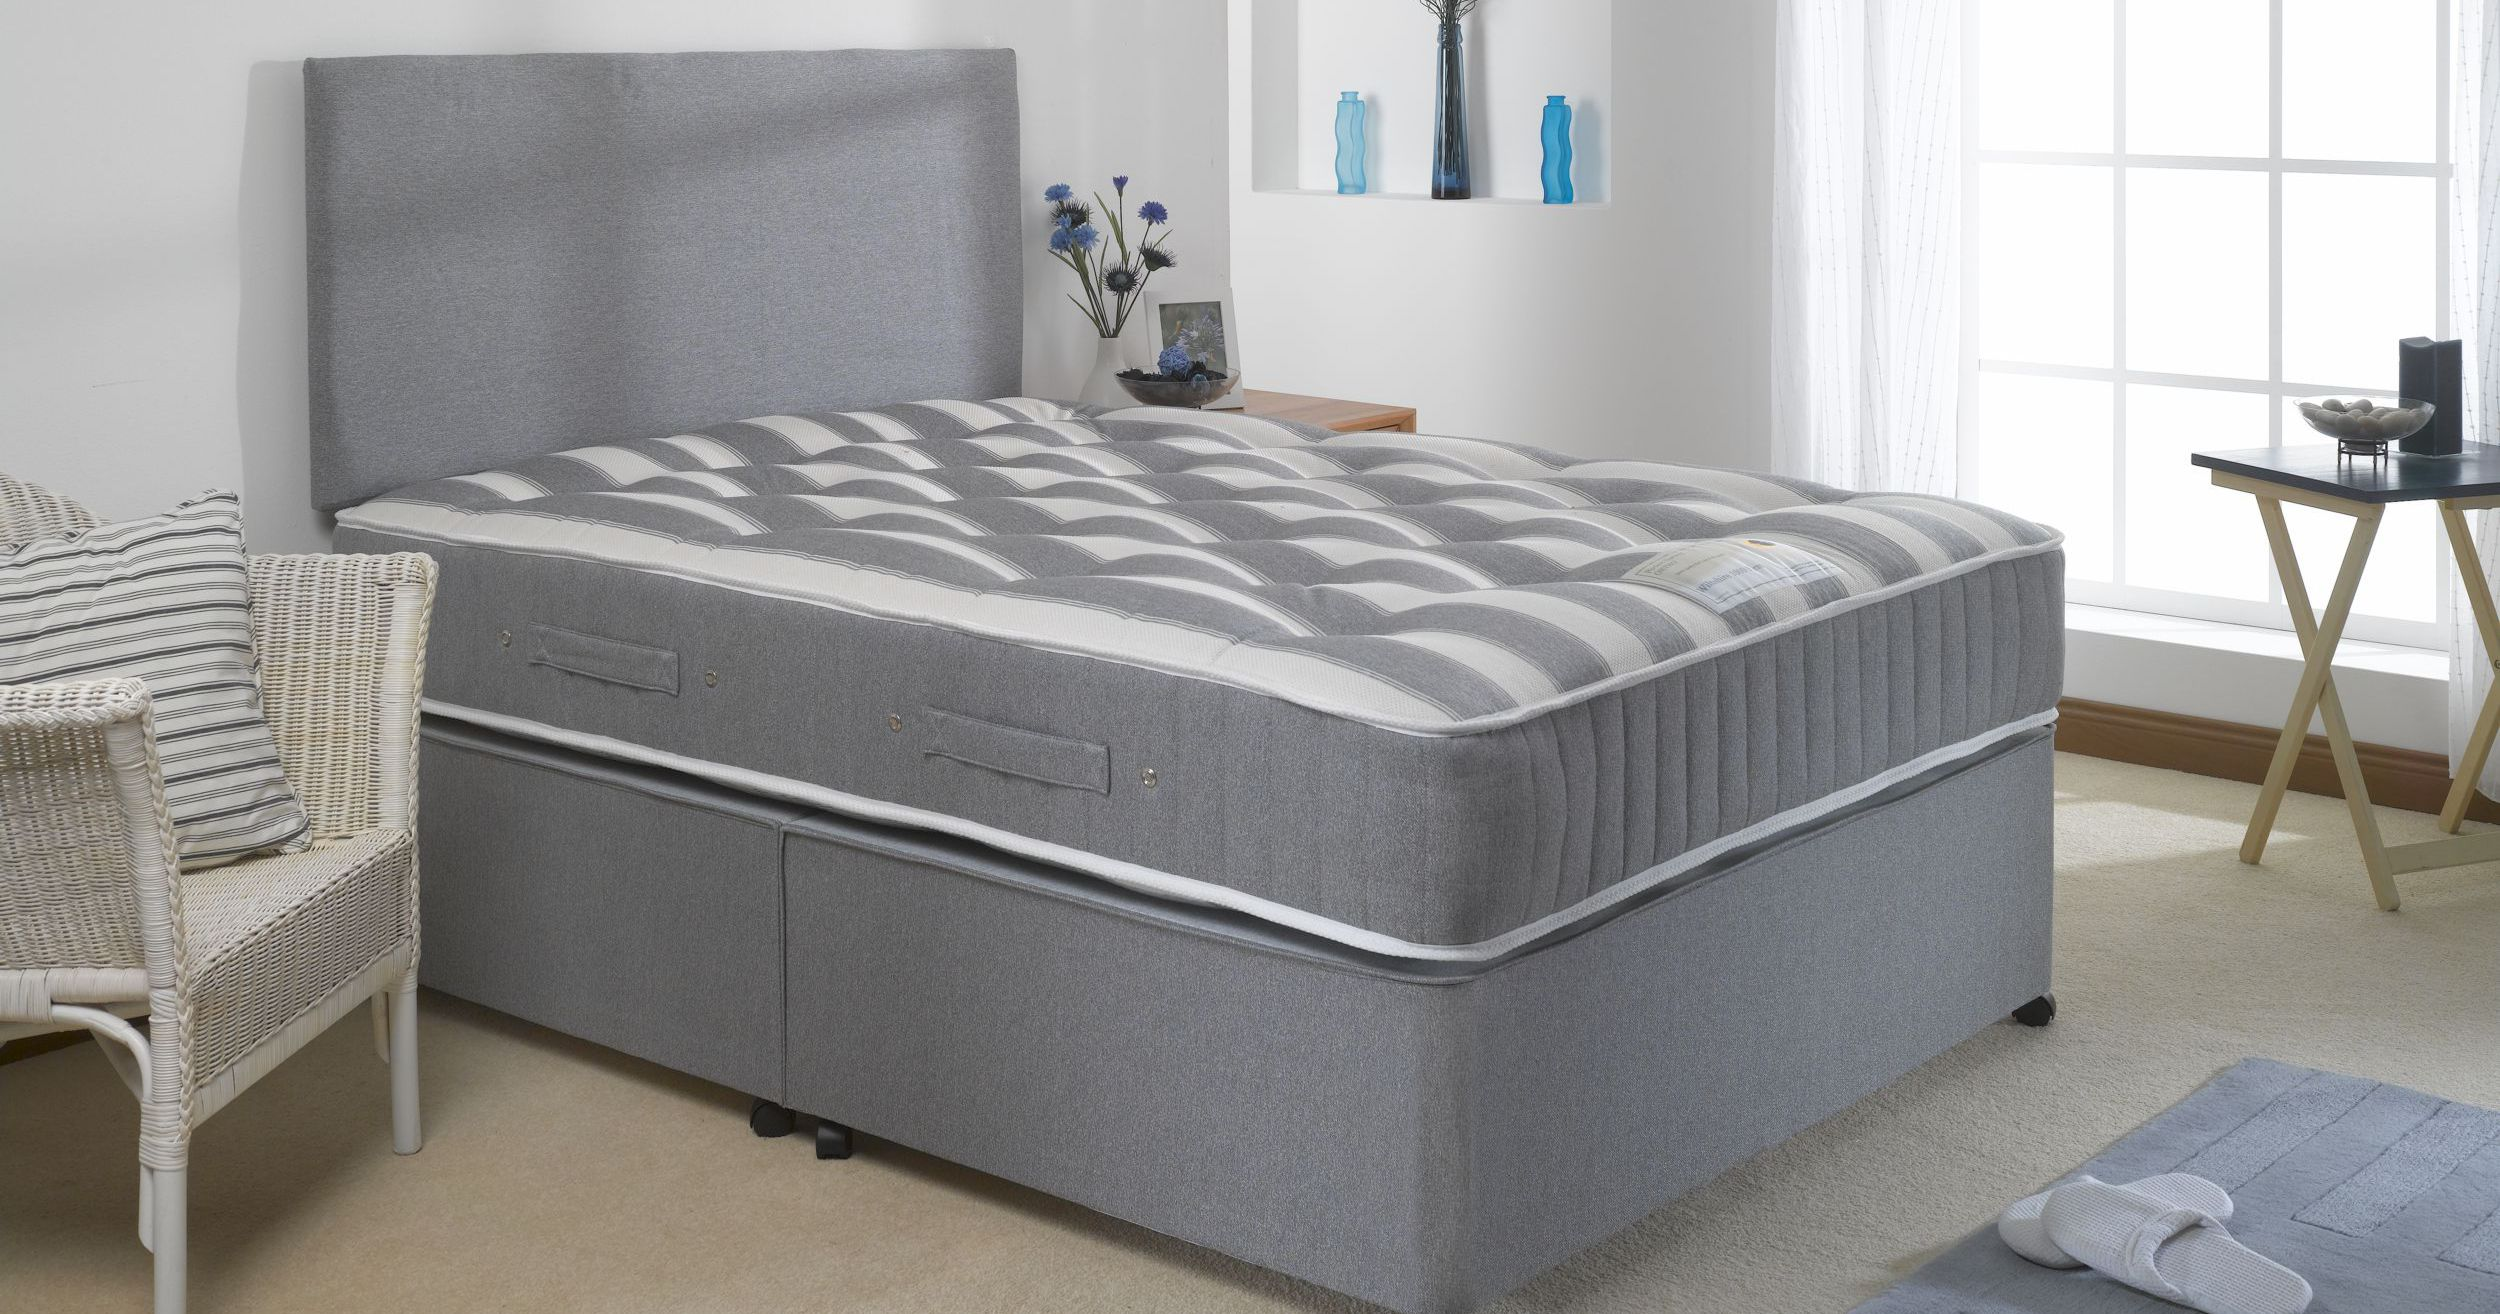 Arun Furnishers Ltd based in Littlehampton, West Sussex supply quality furniture for the home -beds